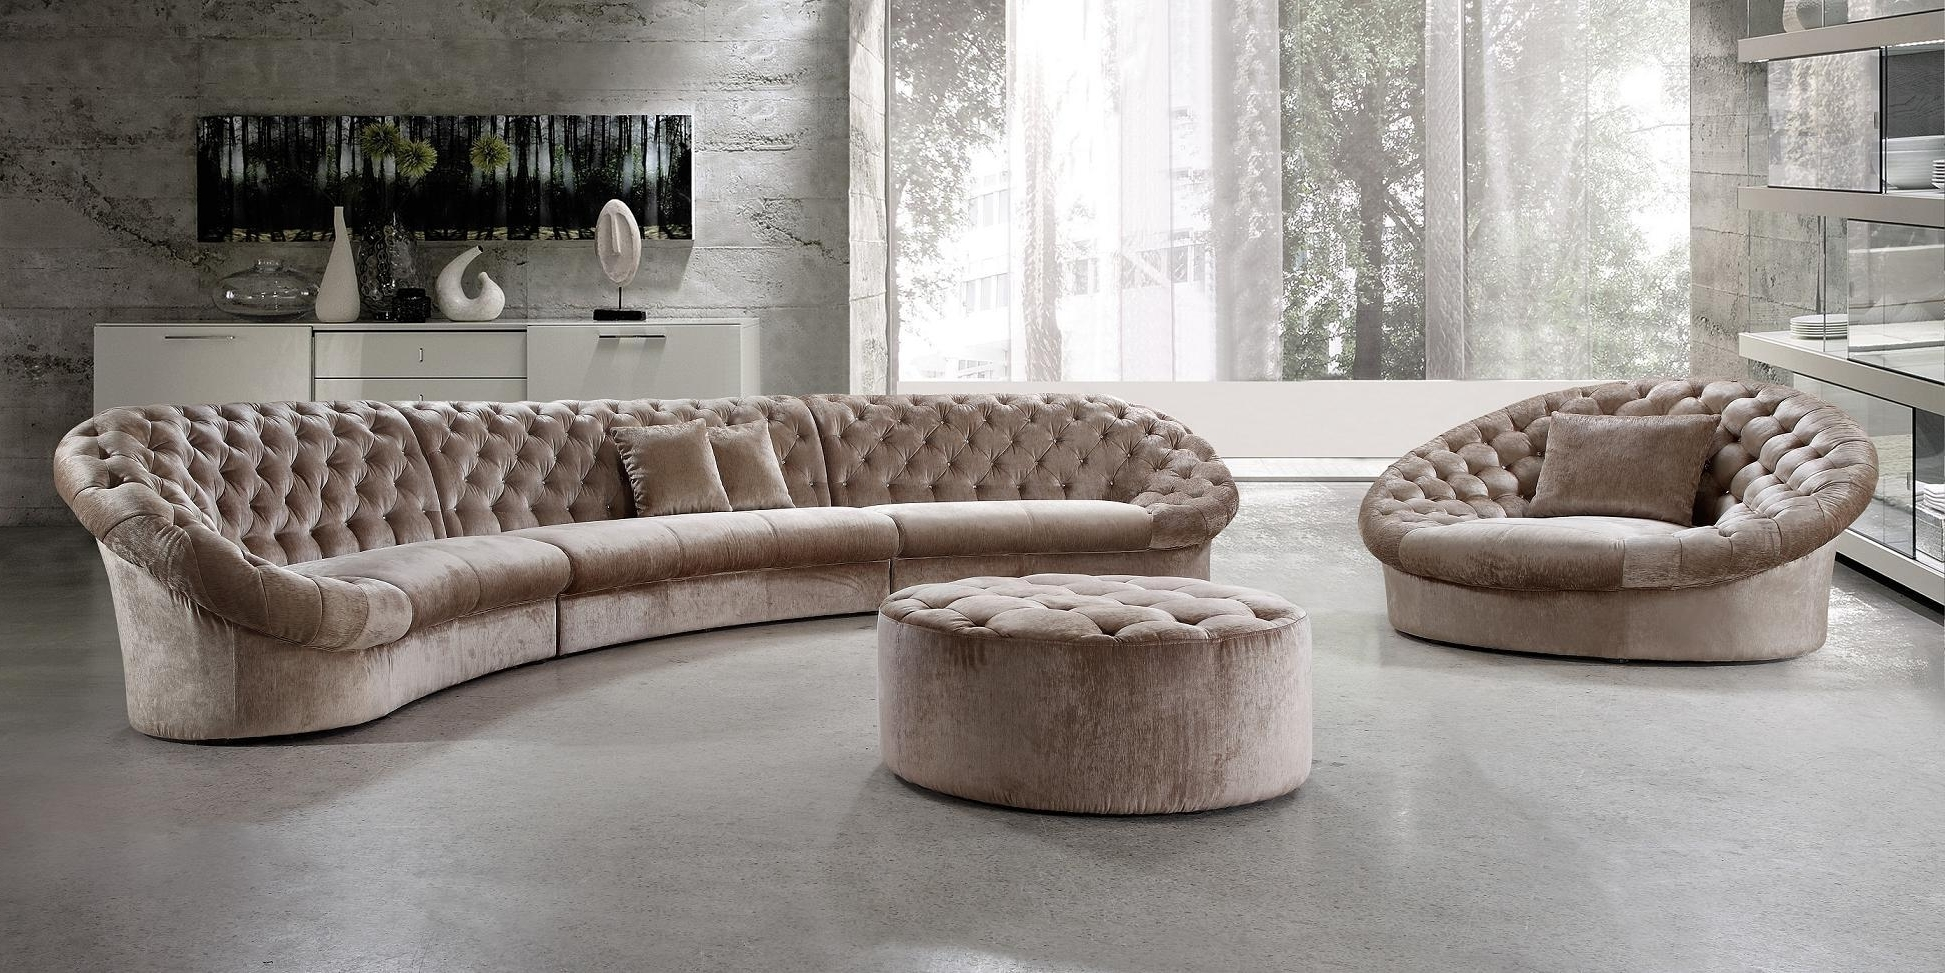 Moc Modern Pertaining To Rounded Corner Sectional Sofas (View 5 of 15)